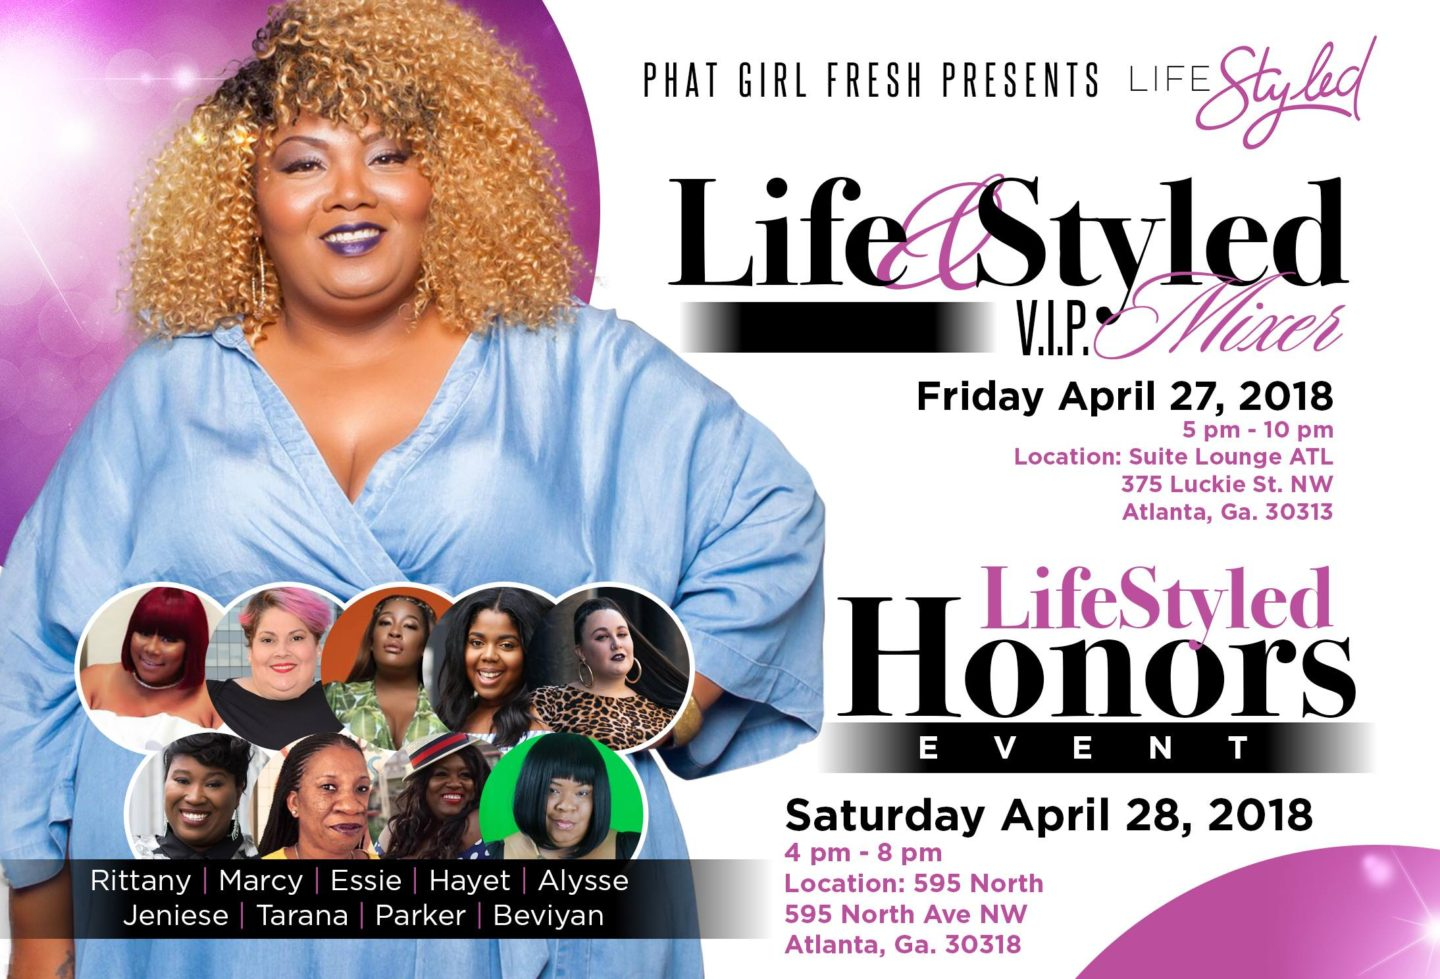 PHAT GIRL FRESH PRESENTS LIFE STYLED HONORS